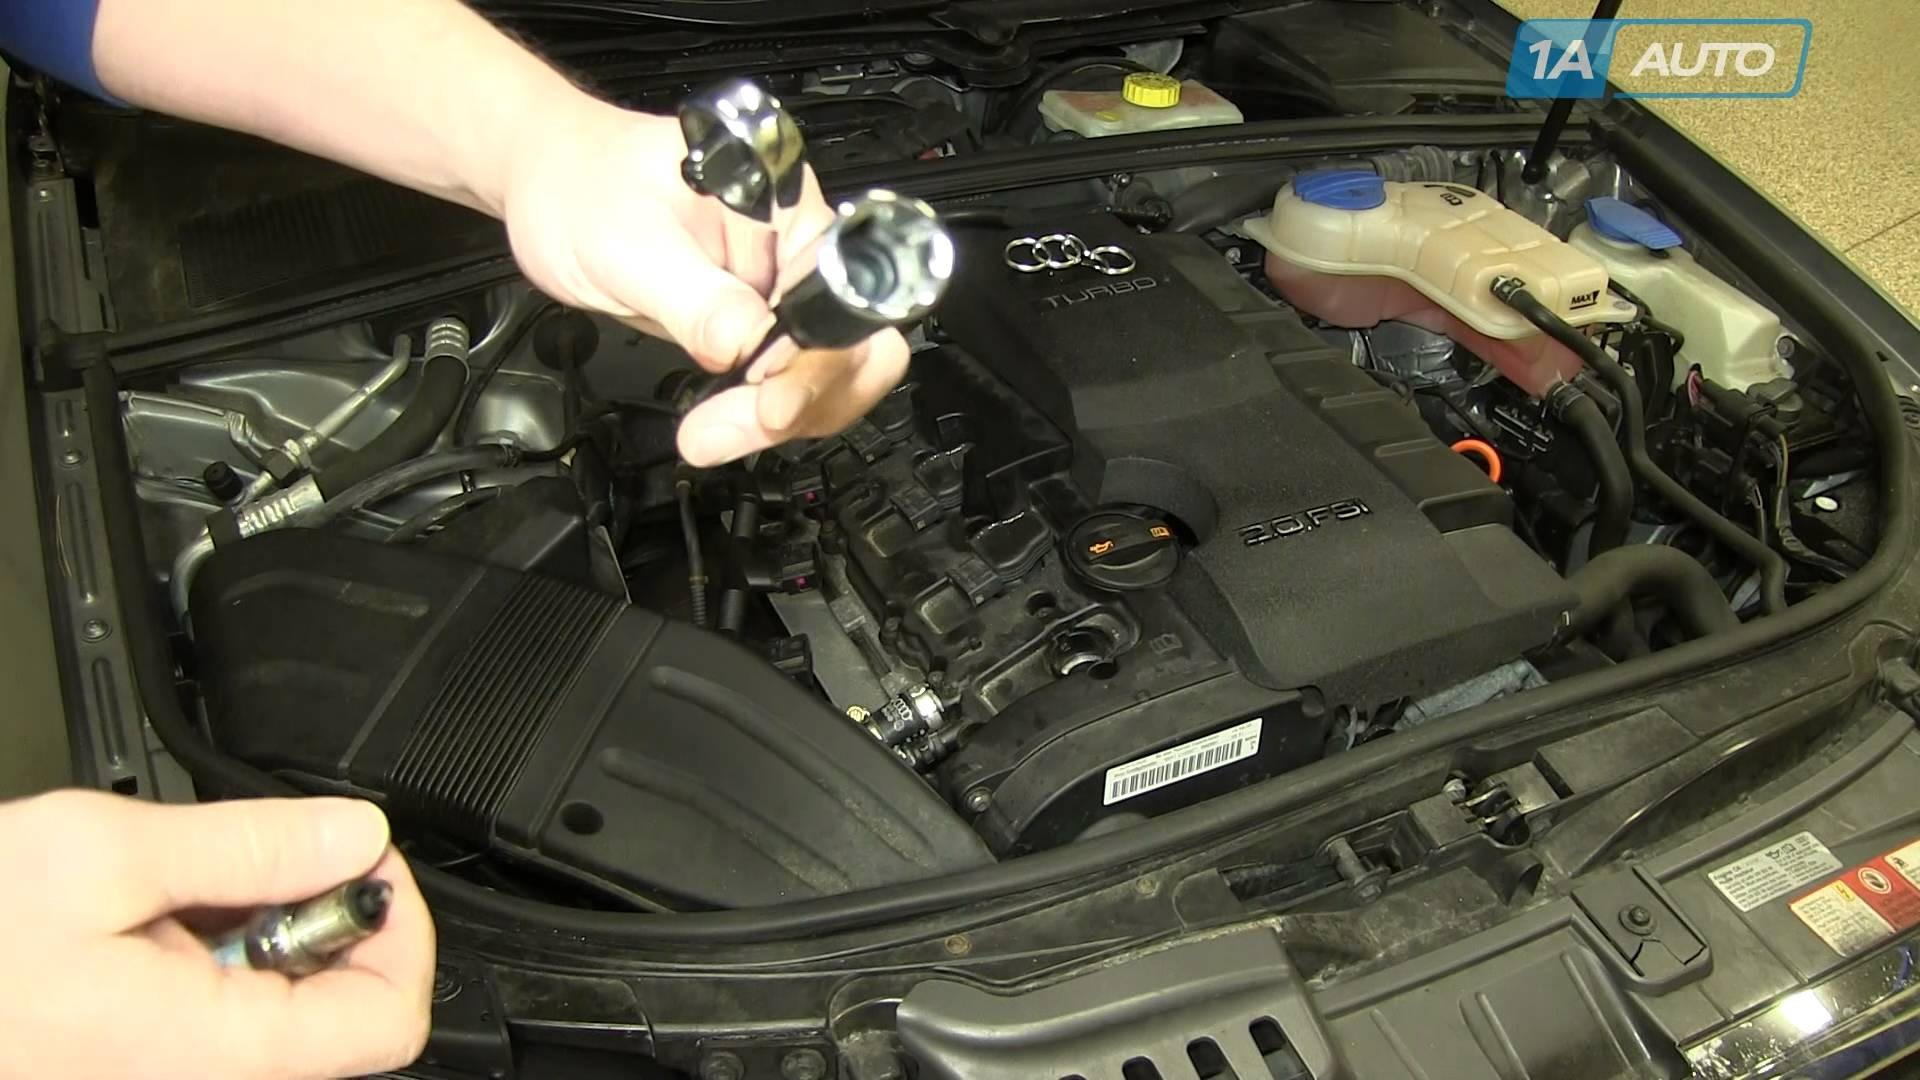 Audi A3 Engine Diagram How to Install Replace Spark Plugs 1997 13 Audi A4 1 8l 2 0l Of Audi A3 Engine Diagram